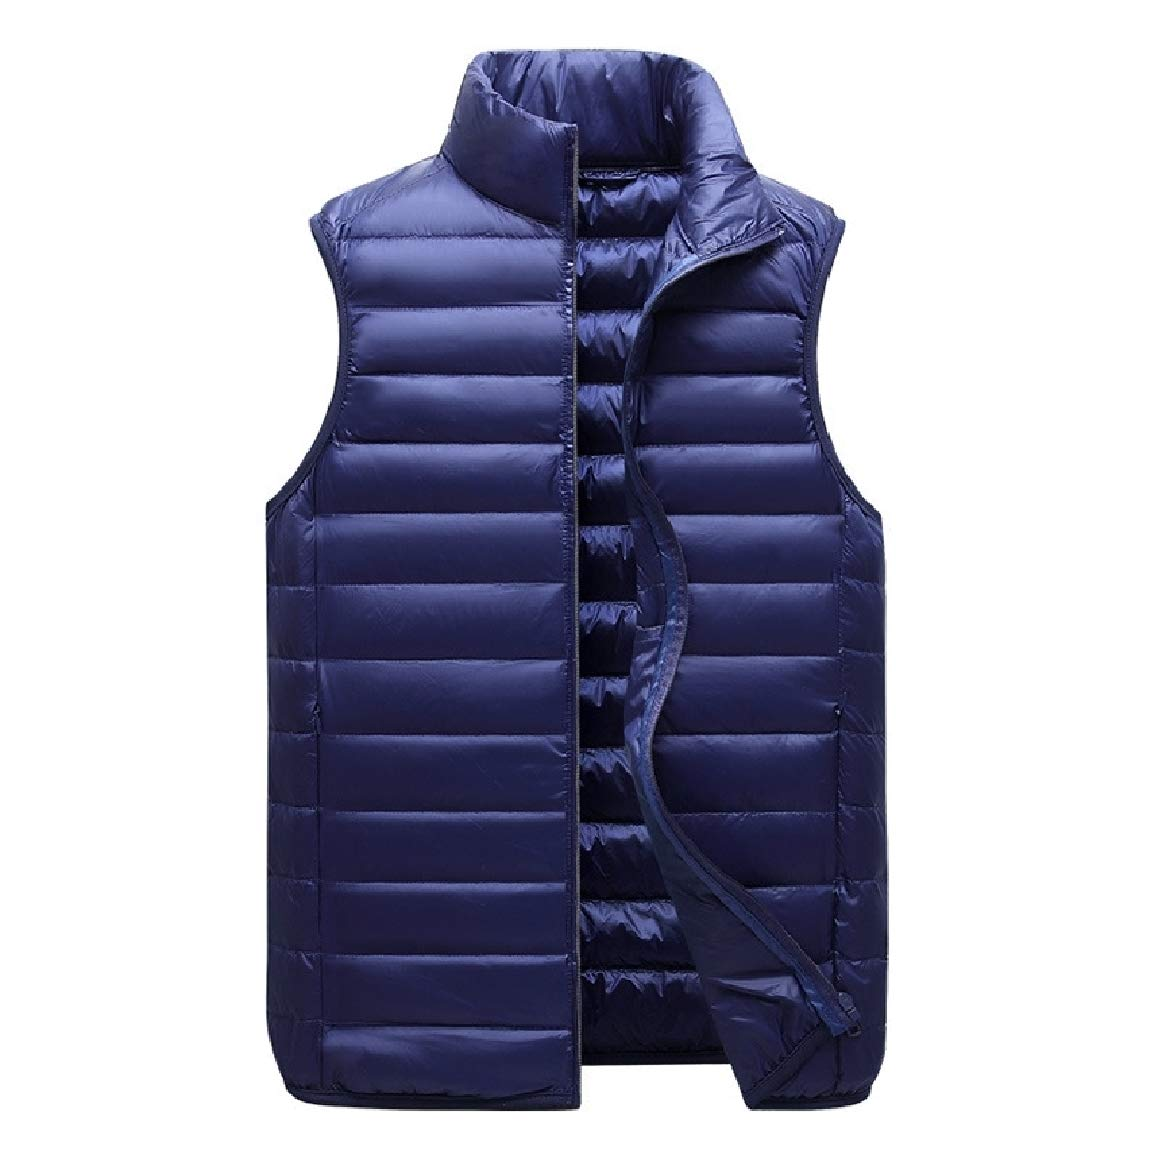 RingBong Mens Sleeveless Regular-Fit Brumal Stand up Collar Full-Zip Packable Down Vests Jacket